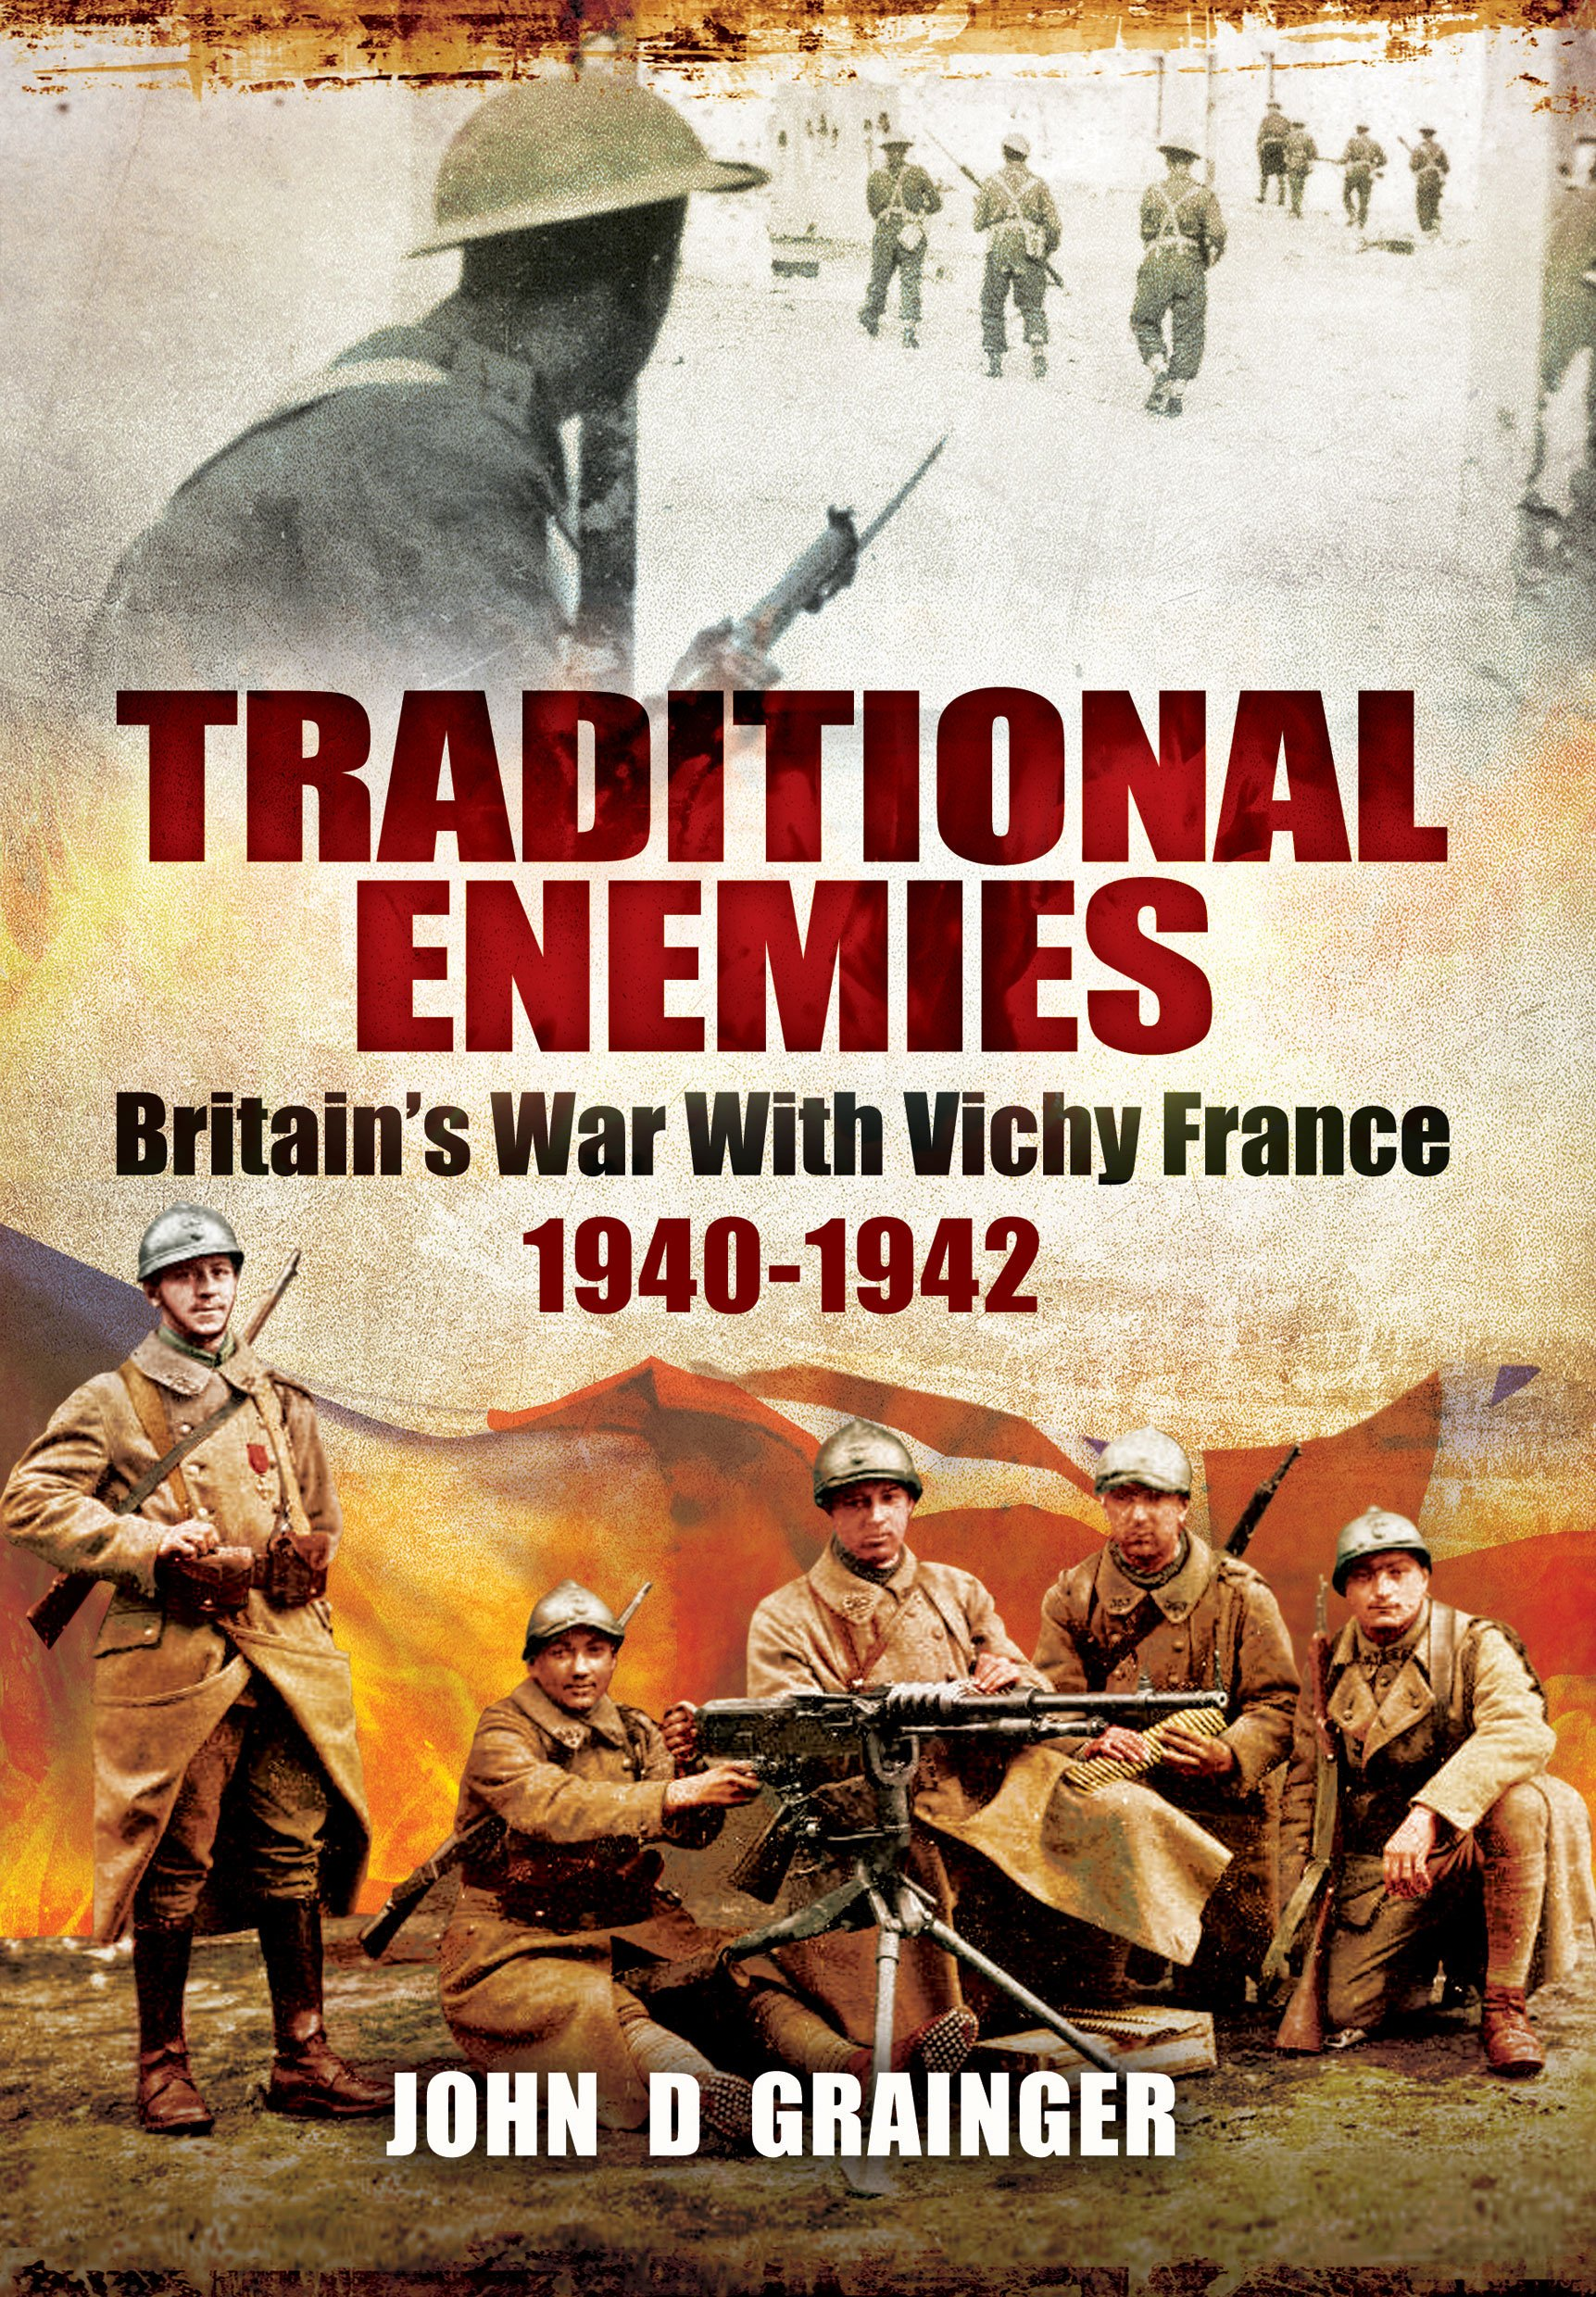 Download Traditional Enemies: Britain's War With Vichy France 1940-42 pdf